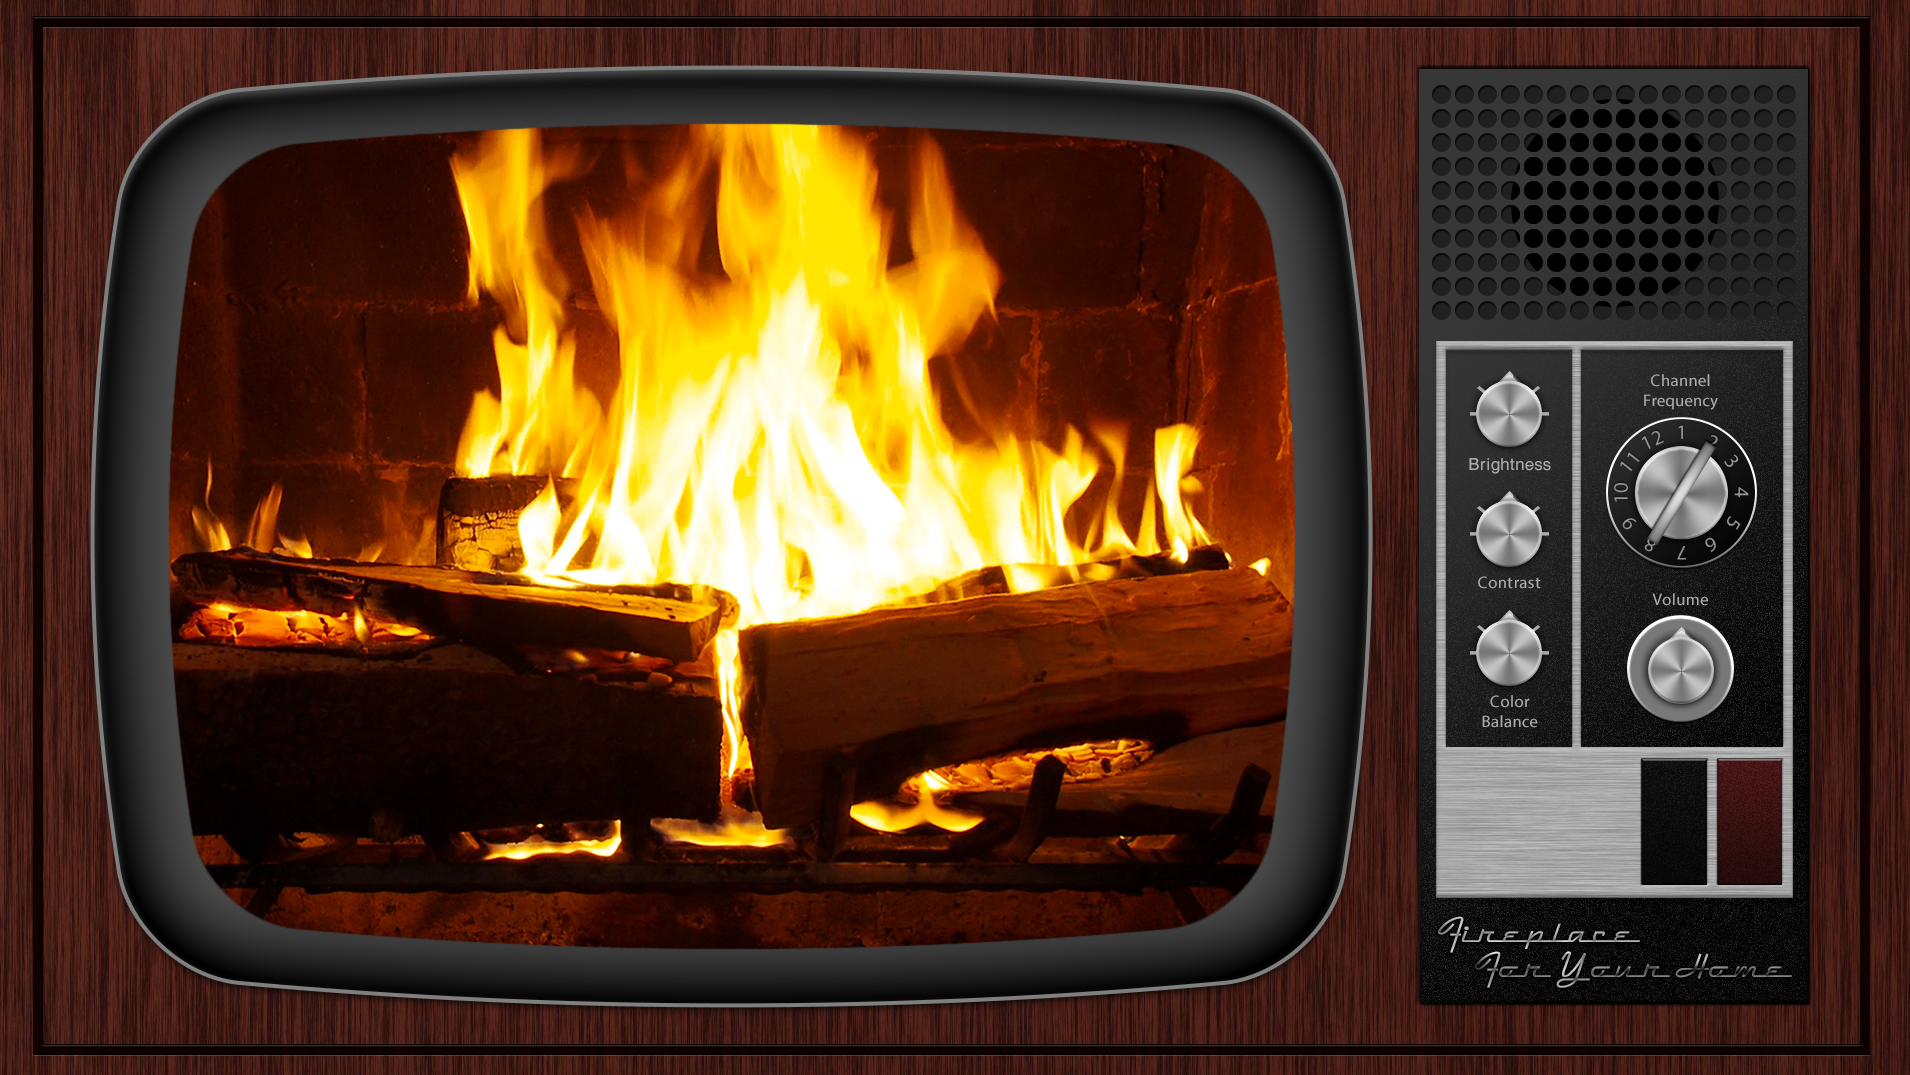 The best yule log videos on the internet — Quartzy